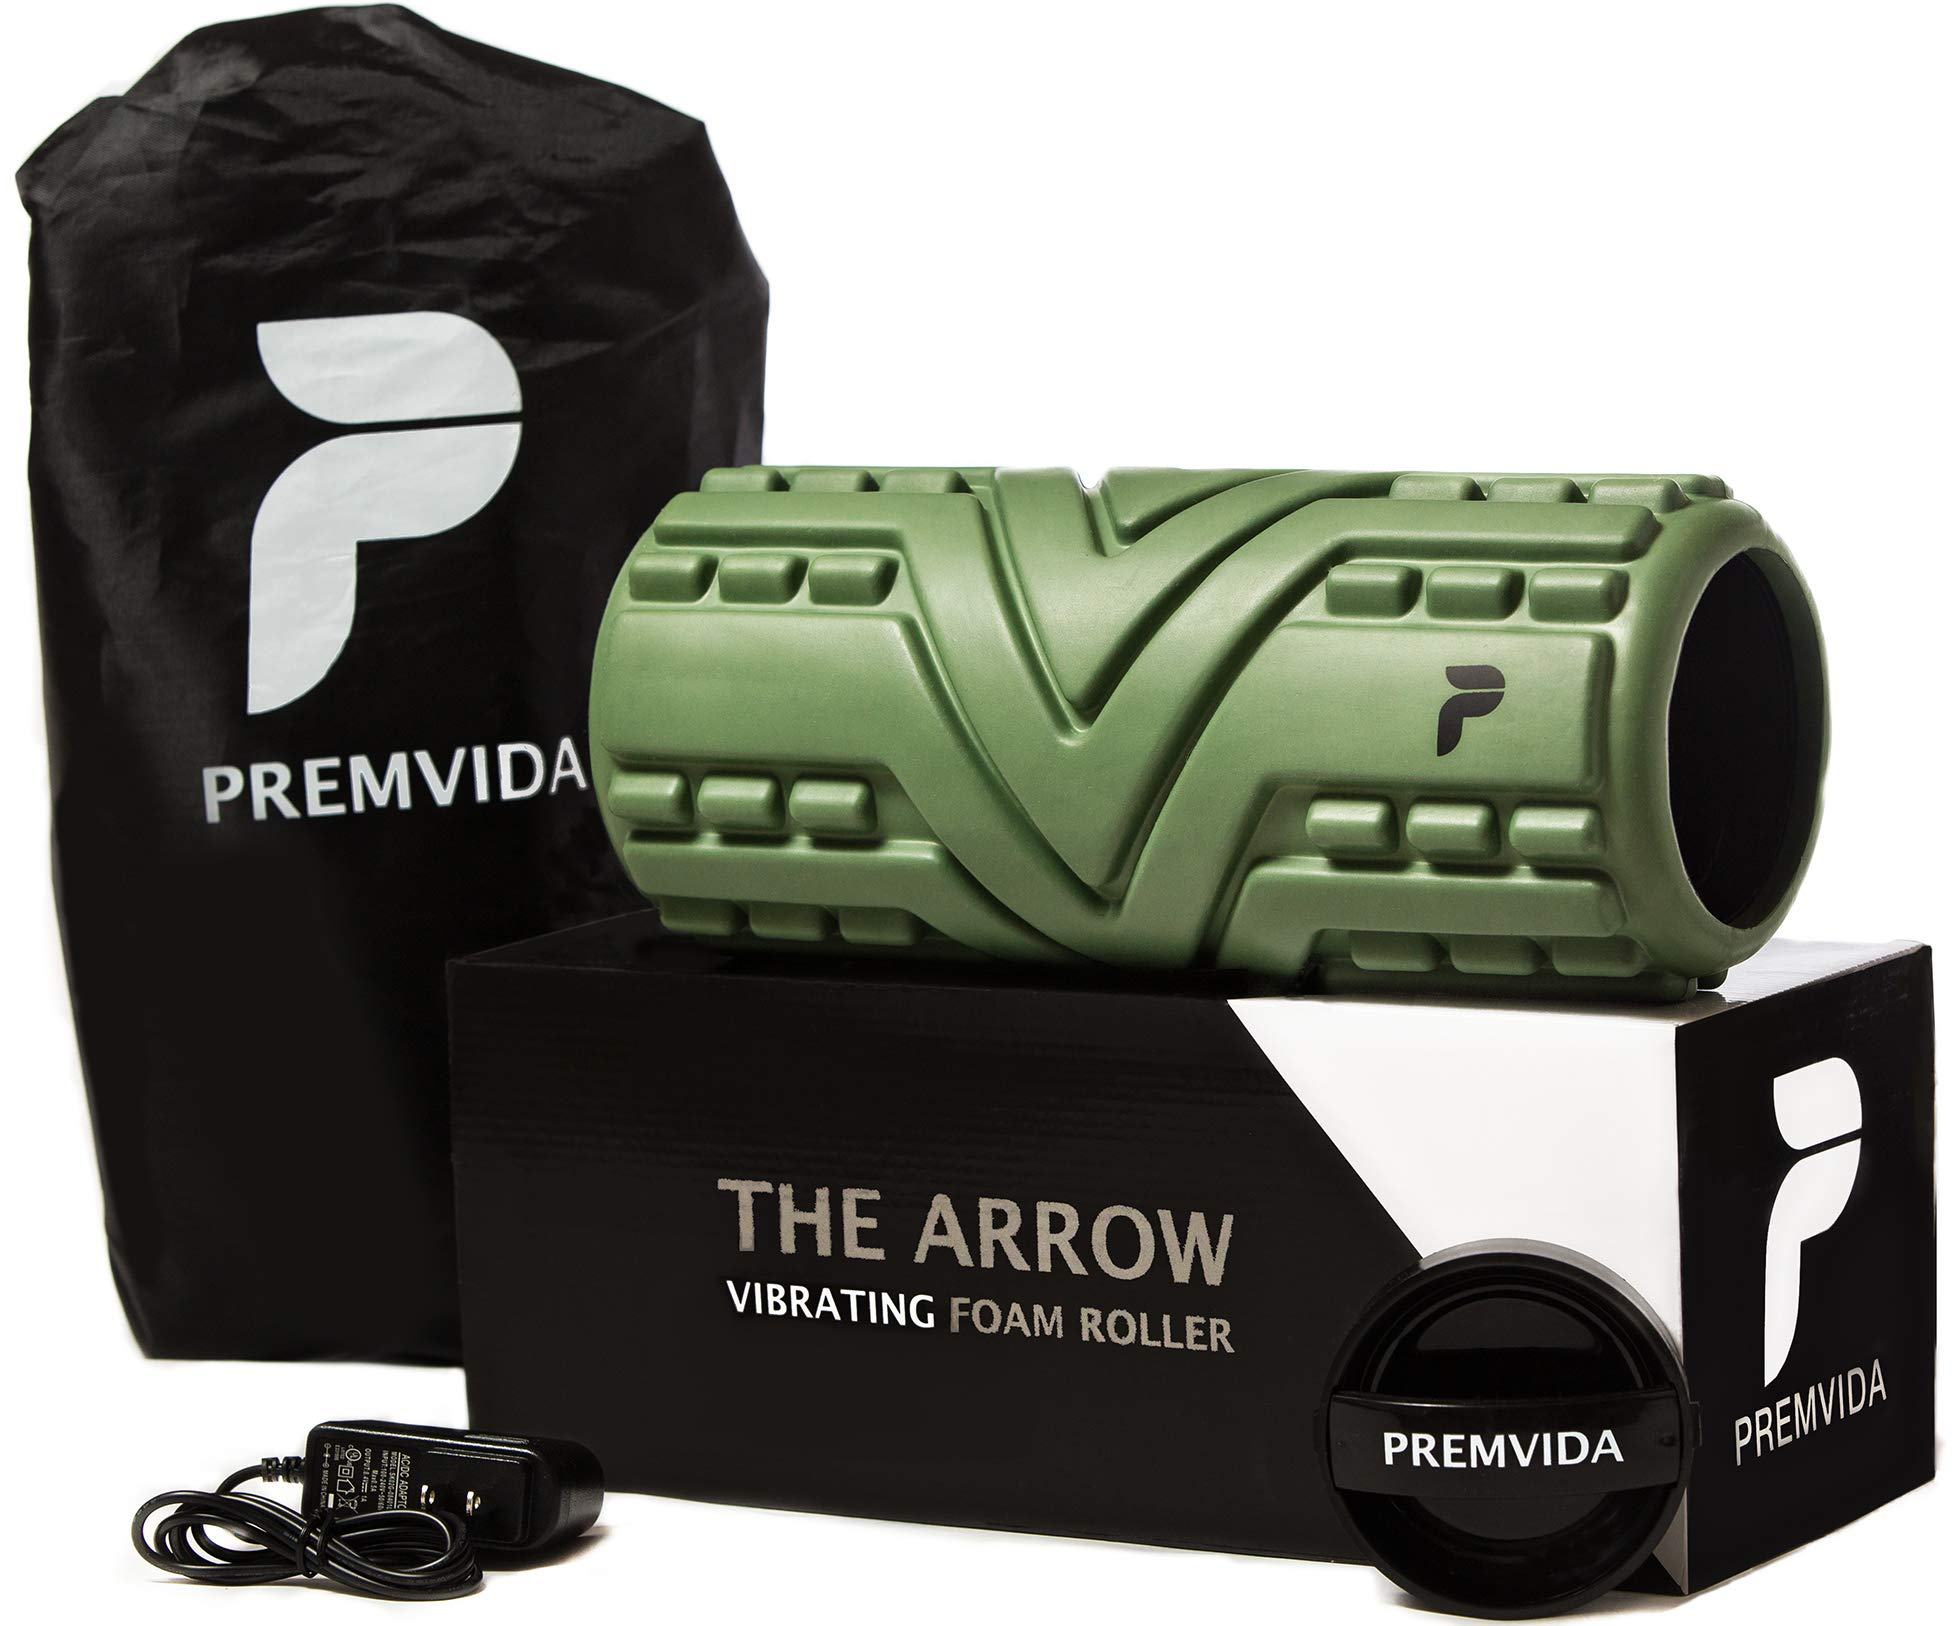 Premvida Vibrating Foam Roller, 3-Speed Vibrational Therapy for Trigger Point & Recovery, Deep Tissue Massage, Pliability & Pain Relief - Vibrant Electric Back Massage Roller Better Than Massage Ball